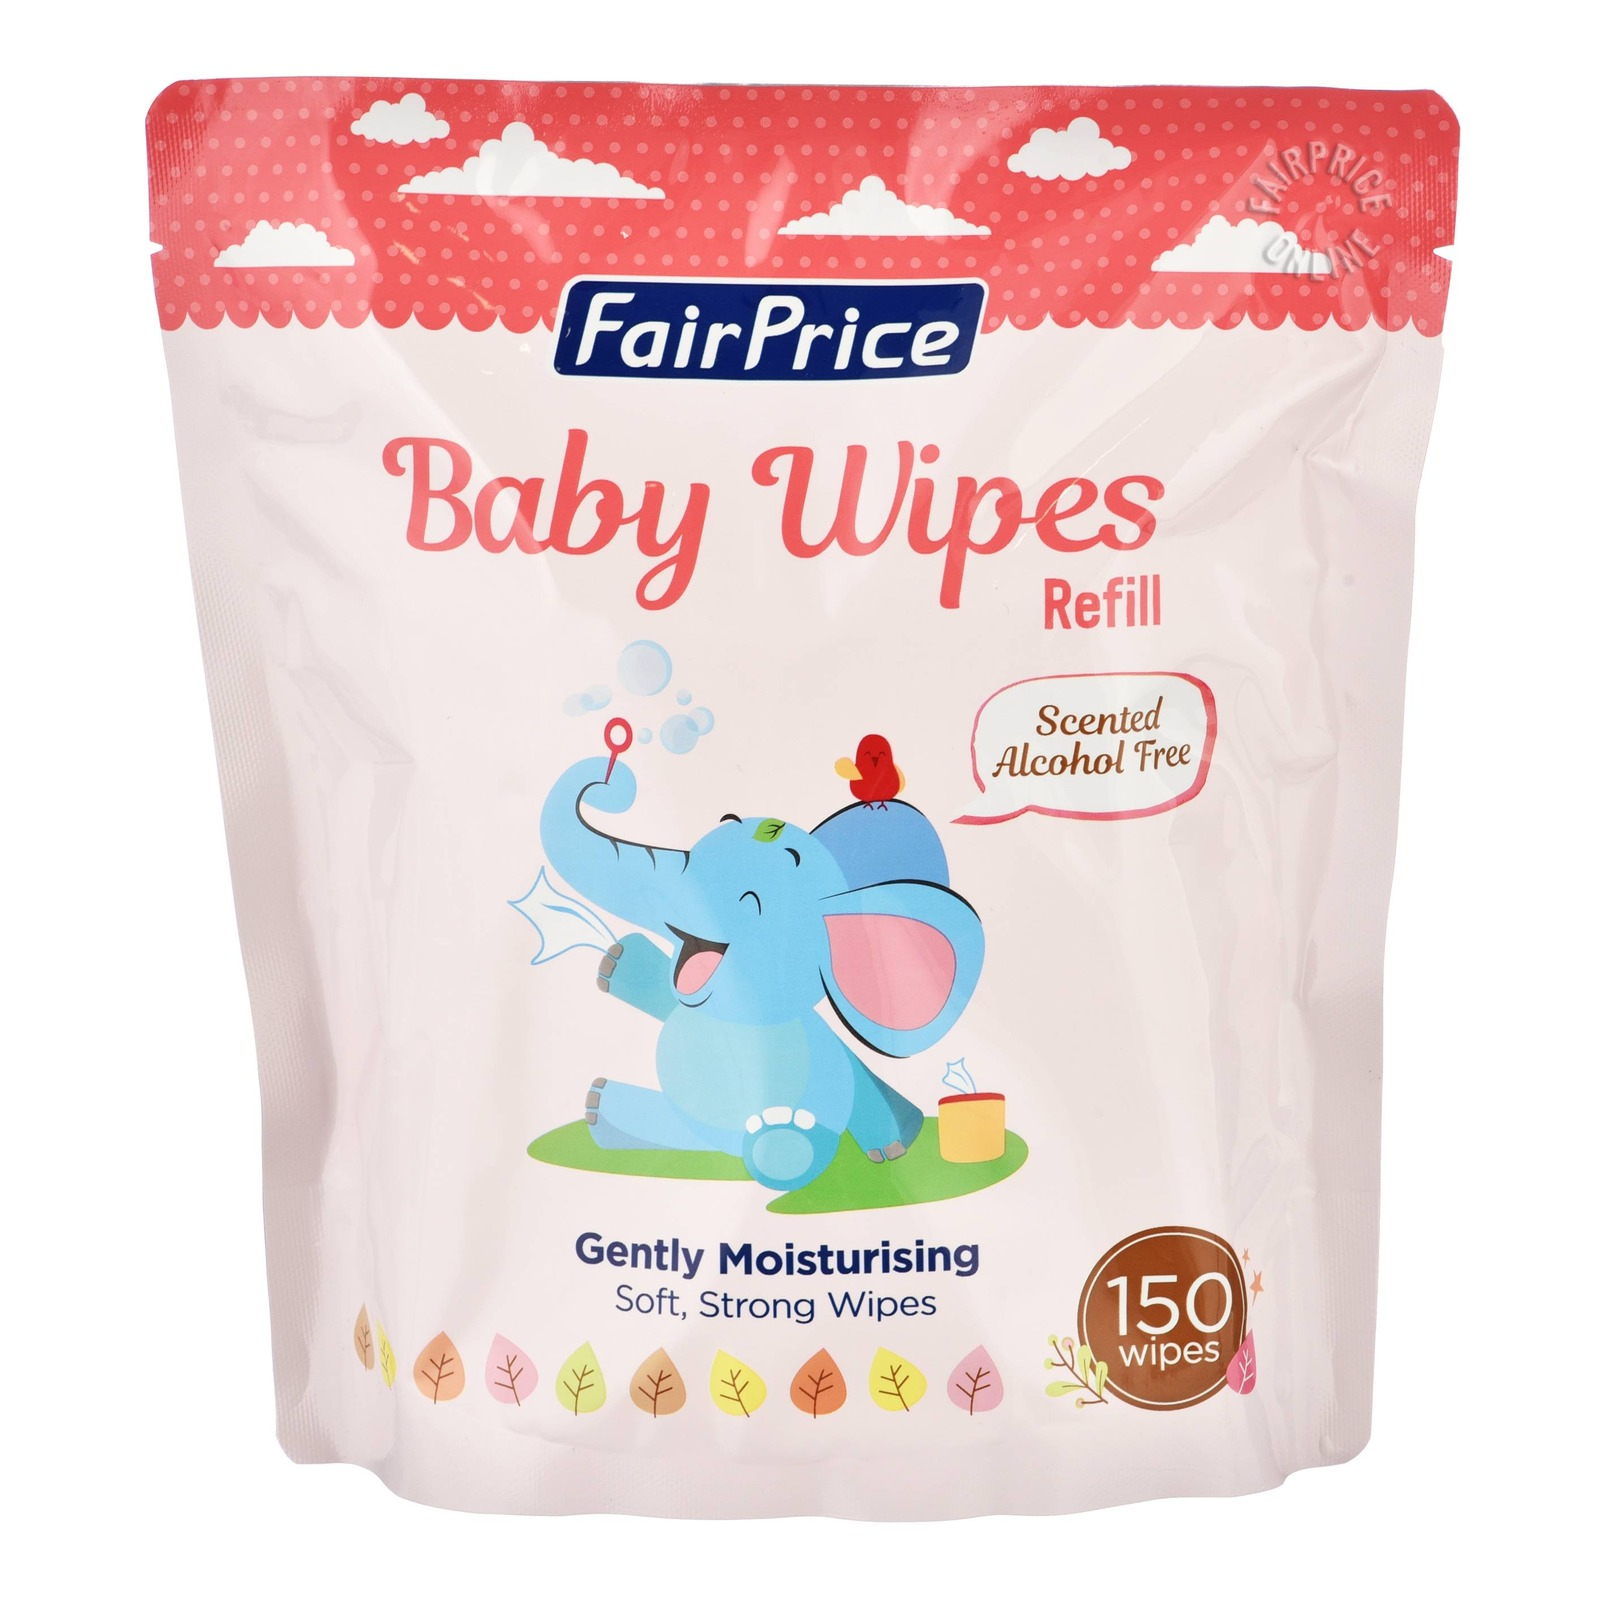 FairPrice Baby Wet Wipes Refill - Gently Moisturising